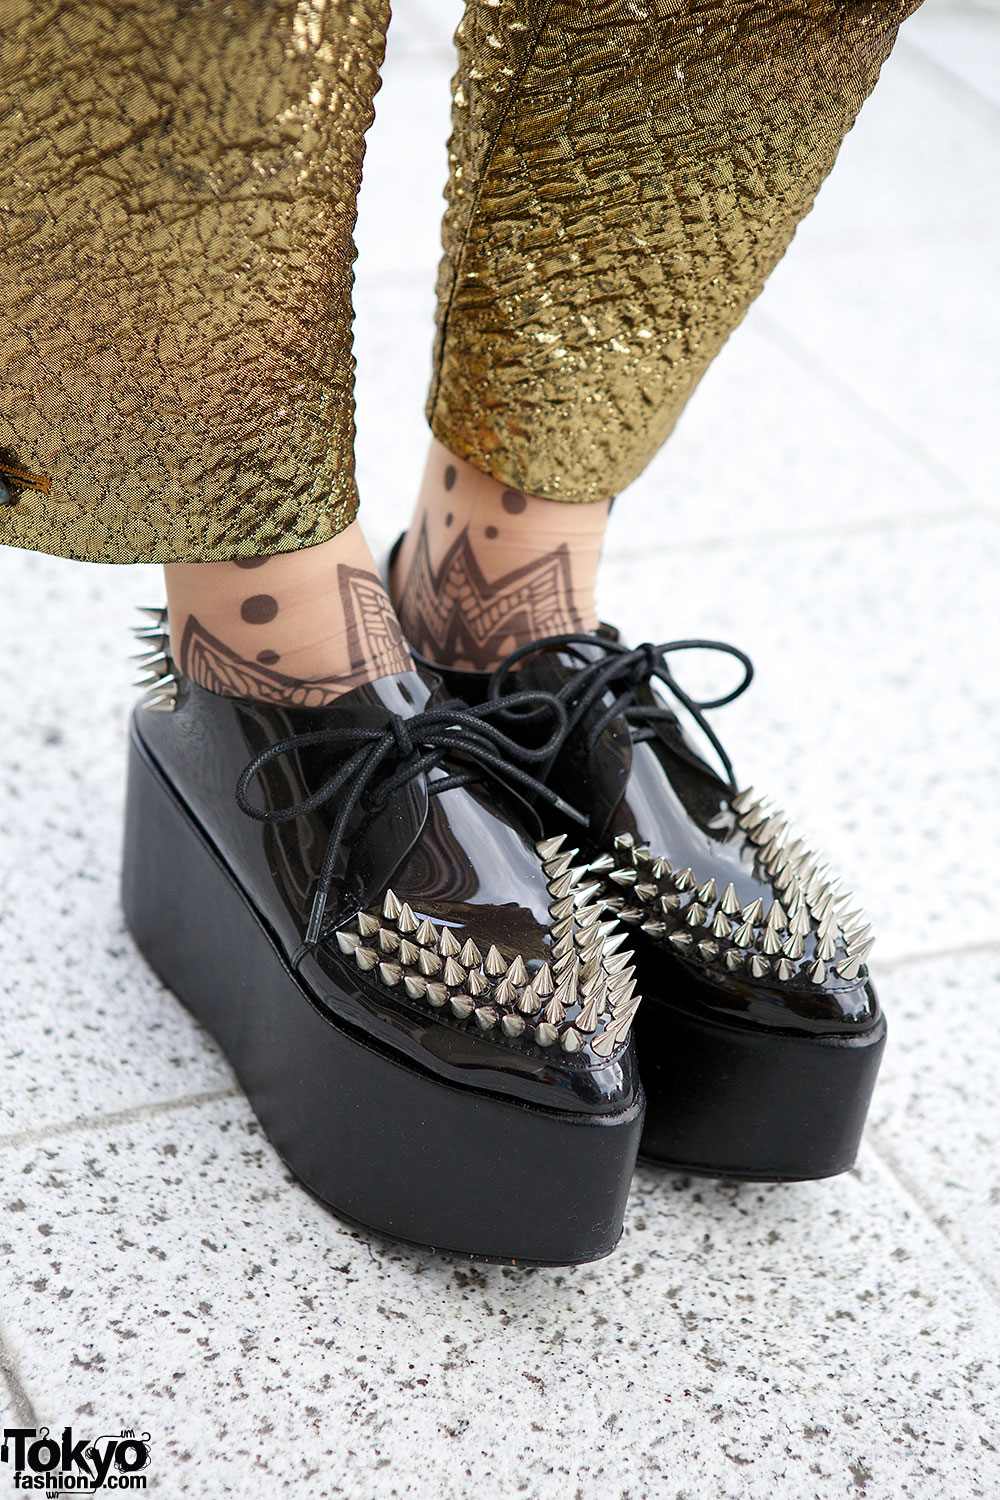 jeffrey campbell spike creepers 10 winter creeper street style looks that rock